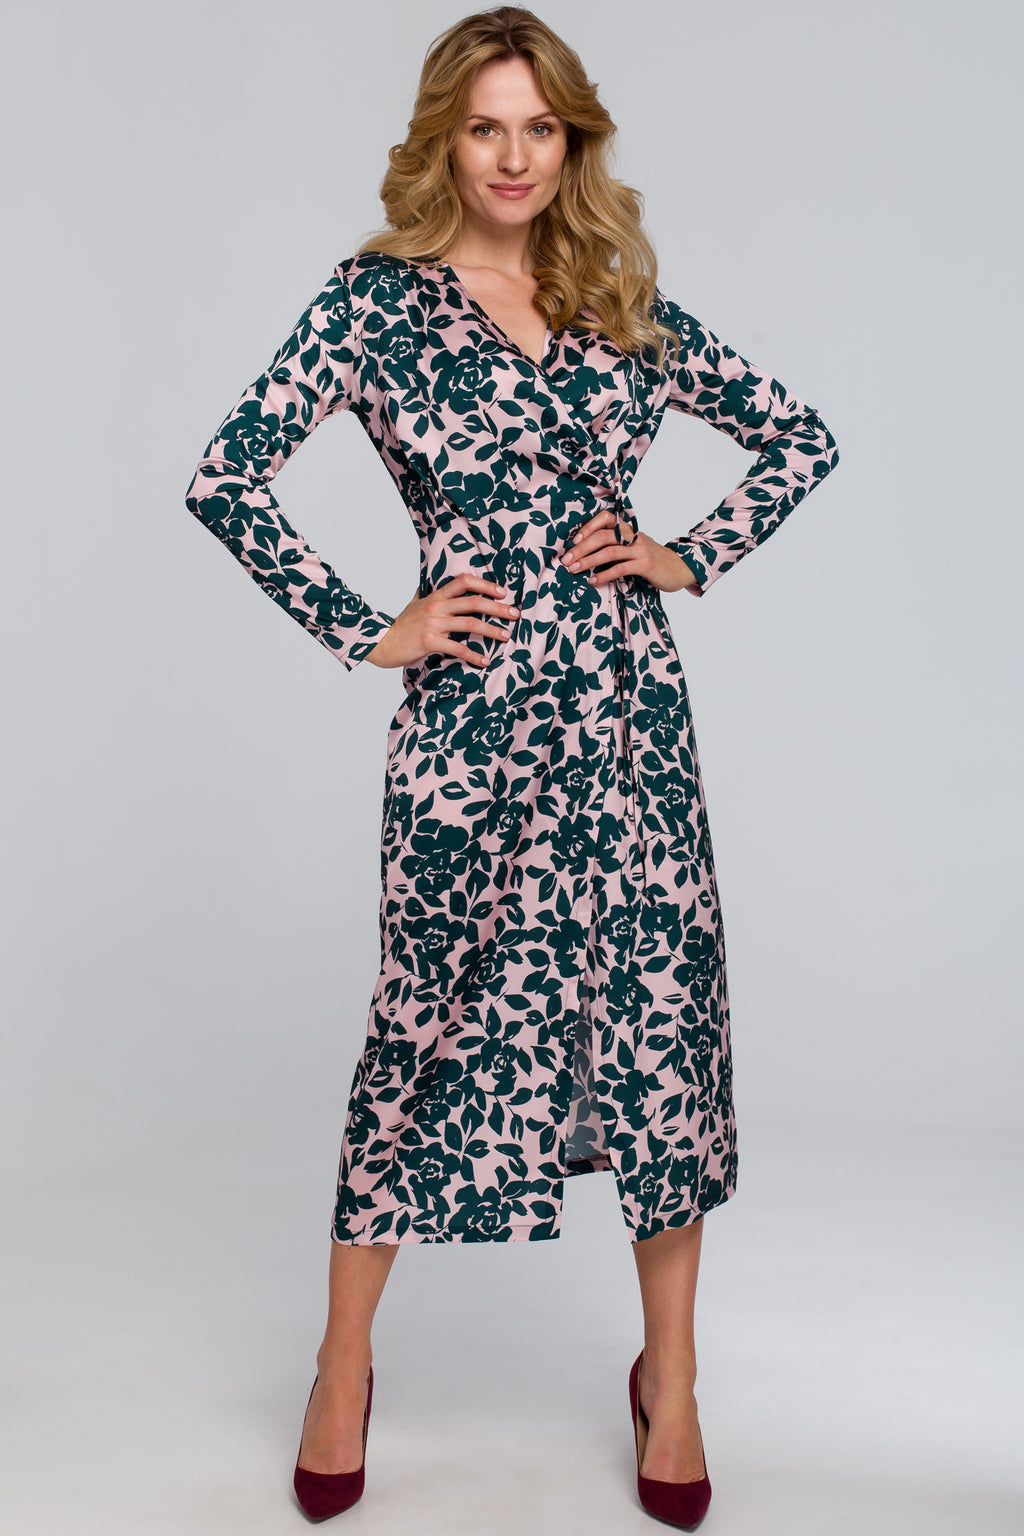 Green And Pink Floral Midi Wrap Dress - So Chic Boutique